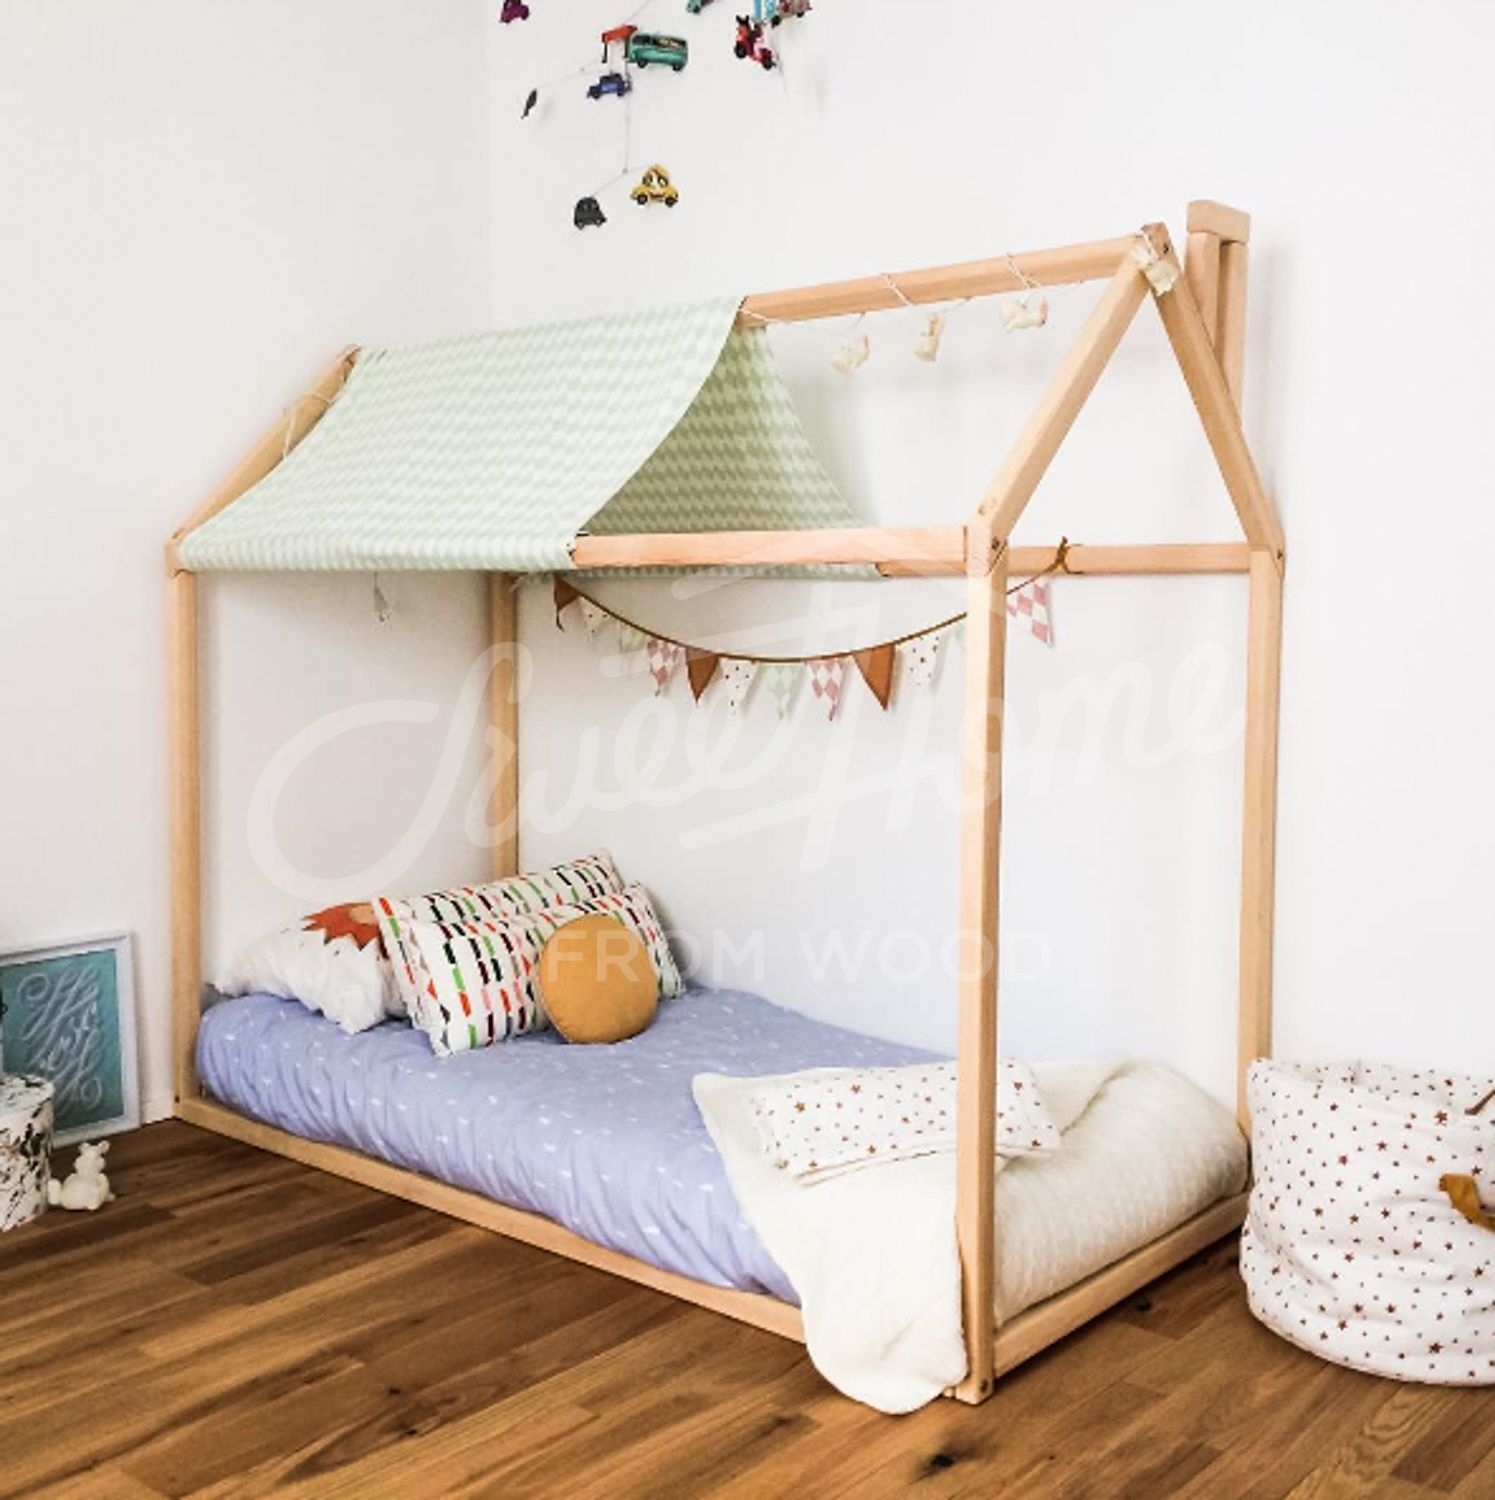 Barnrum, toddler bed, house bed, tent bed, children bed, wooden ...